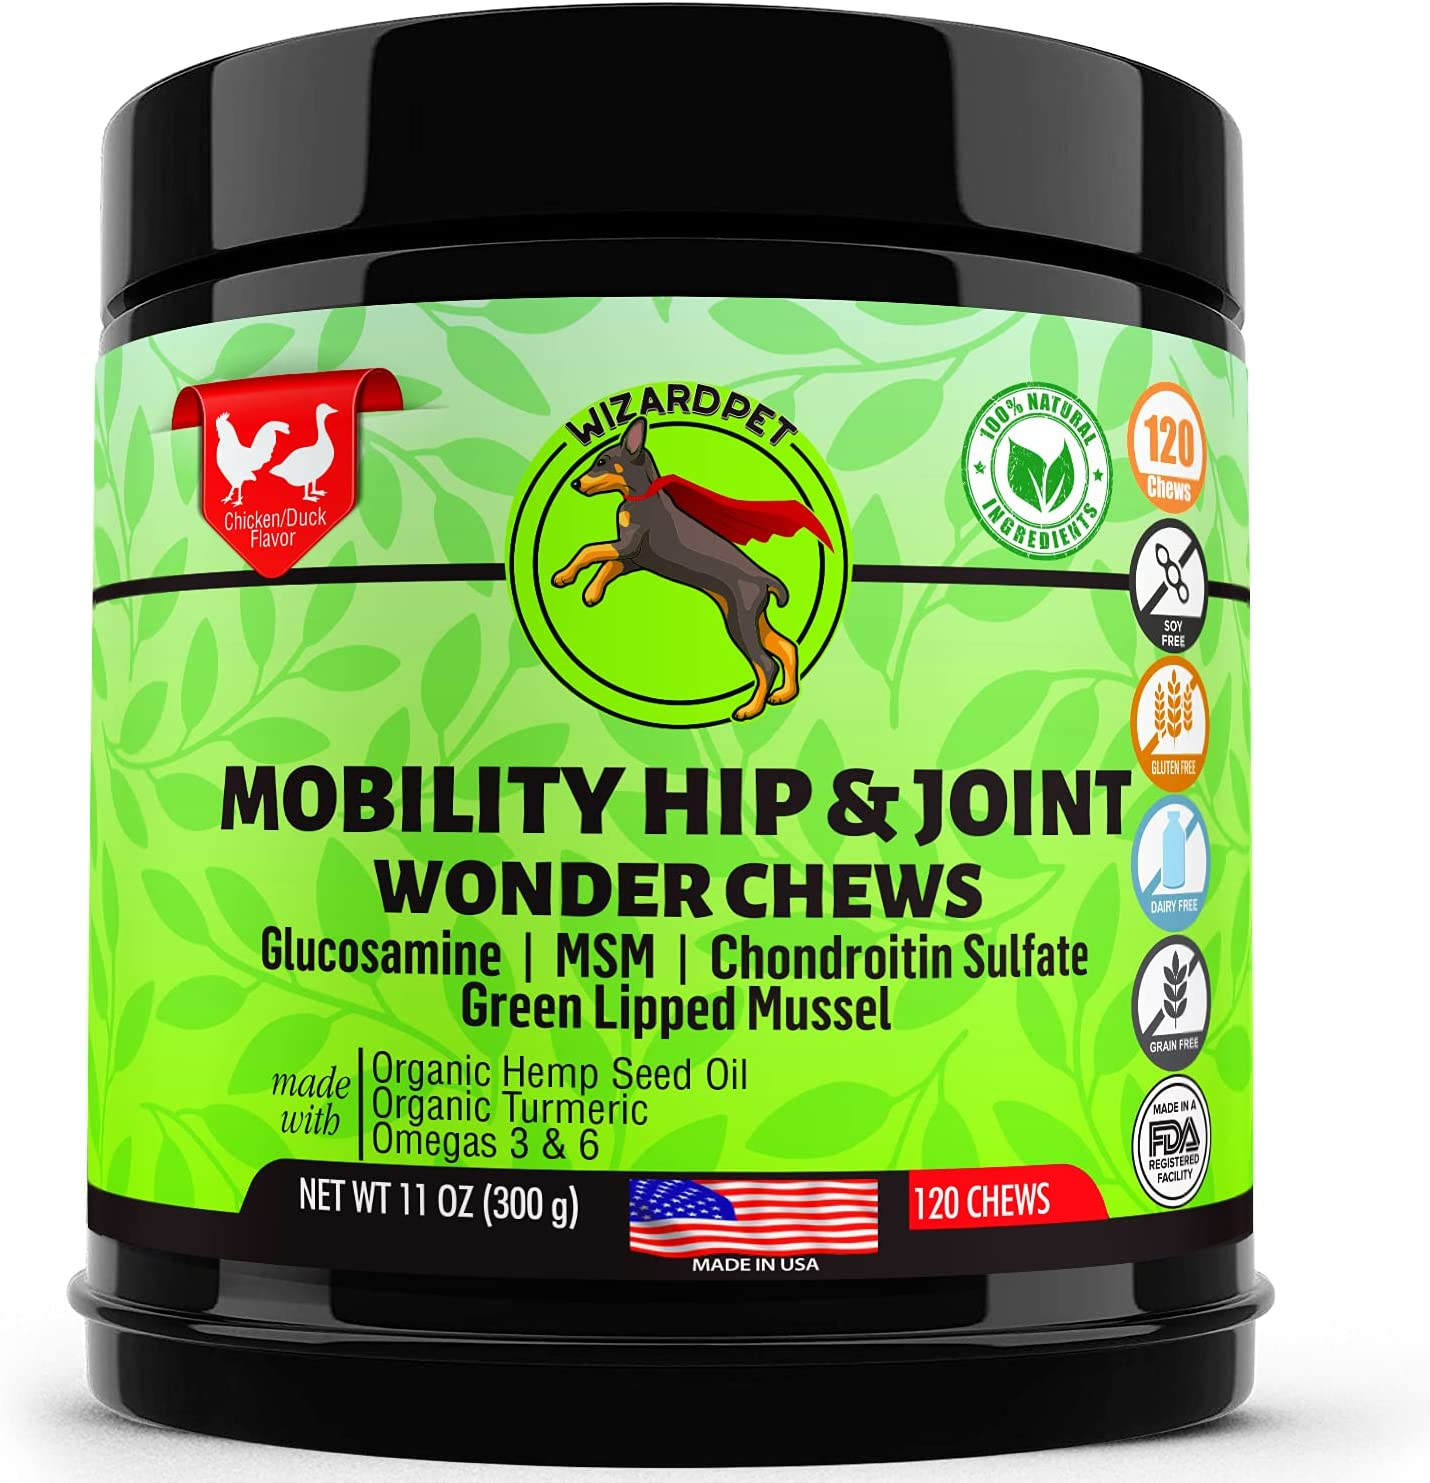 WIZARDPET Advanced Hip & Joint Supplement for Dogs | Glucosamine Chondroitin for Dogs | Omegas | Turmeric MSM Green Lipped Mussel, Dog treats support mobility | 120 Chews